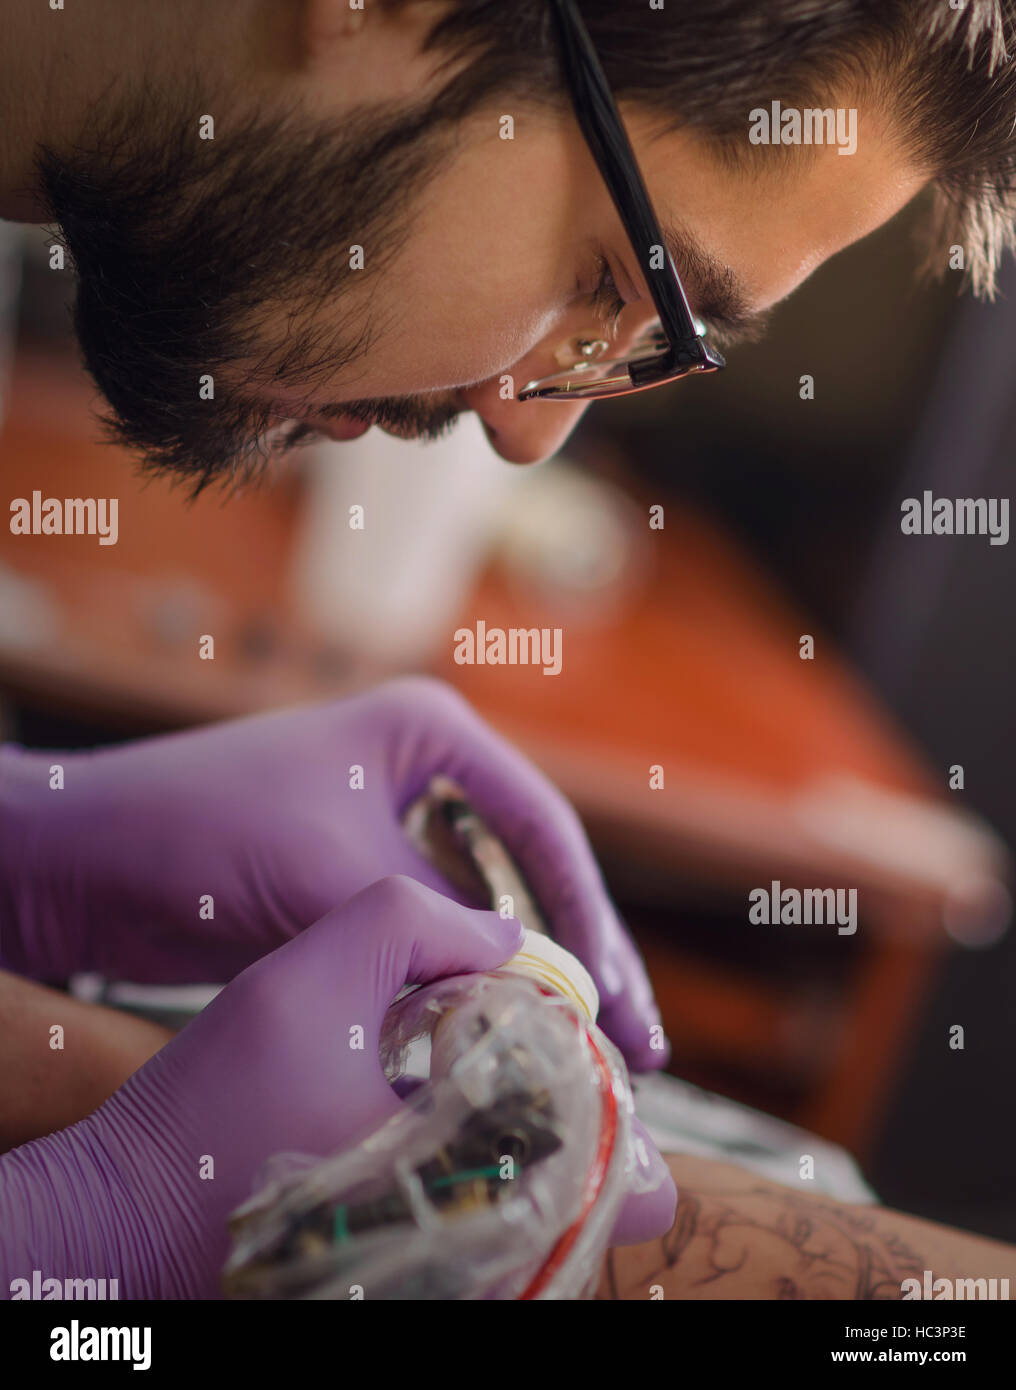 Close up of hand and face tattoo master who holds in his hand Tattoo machine. Soft focus.Focus on face and hand. - Stock Image